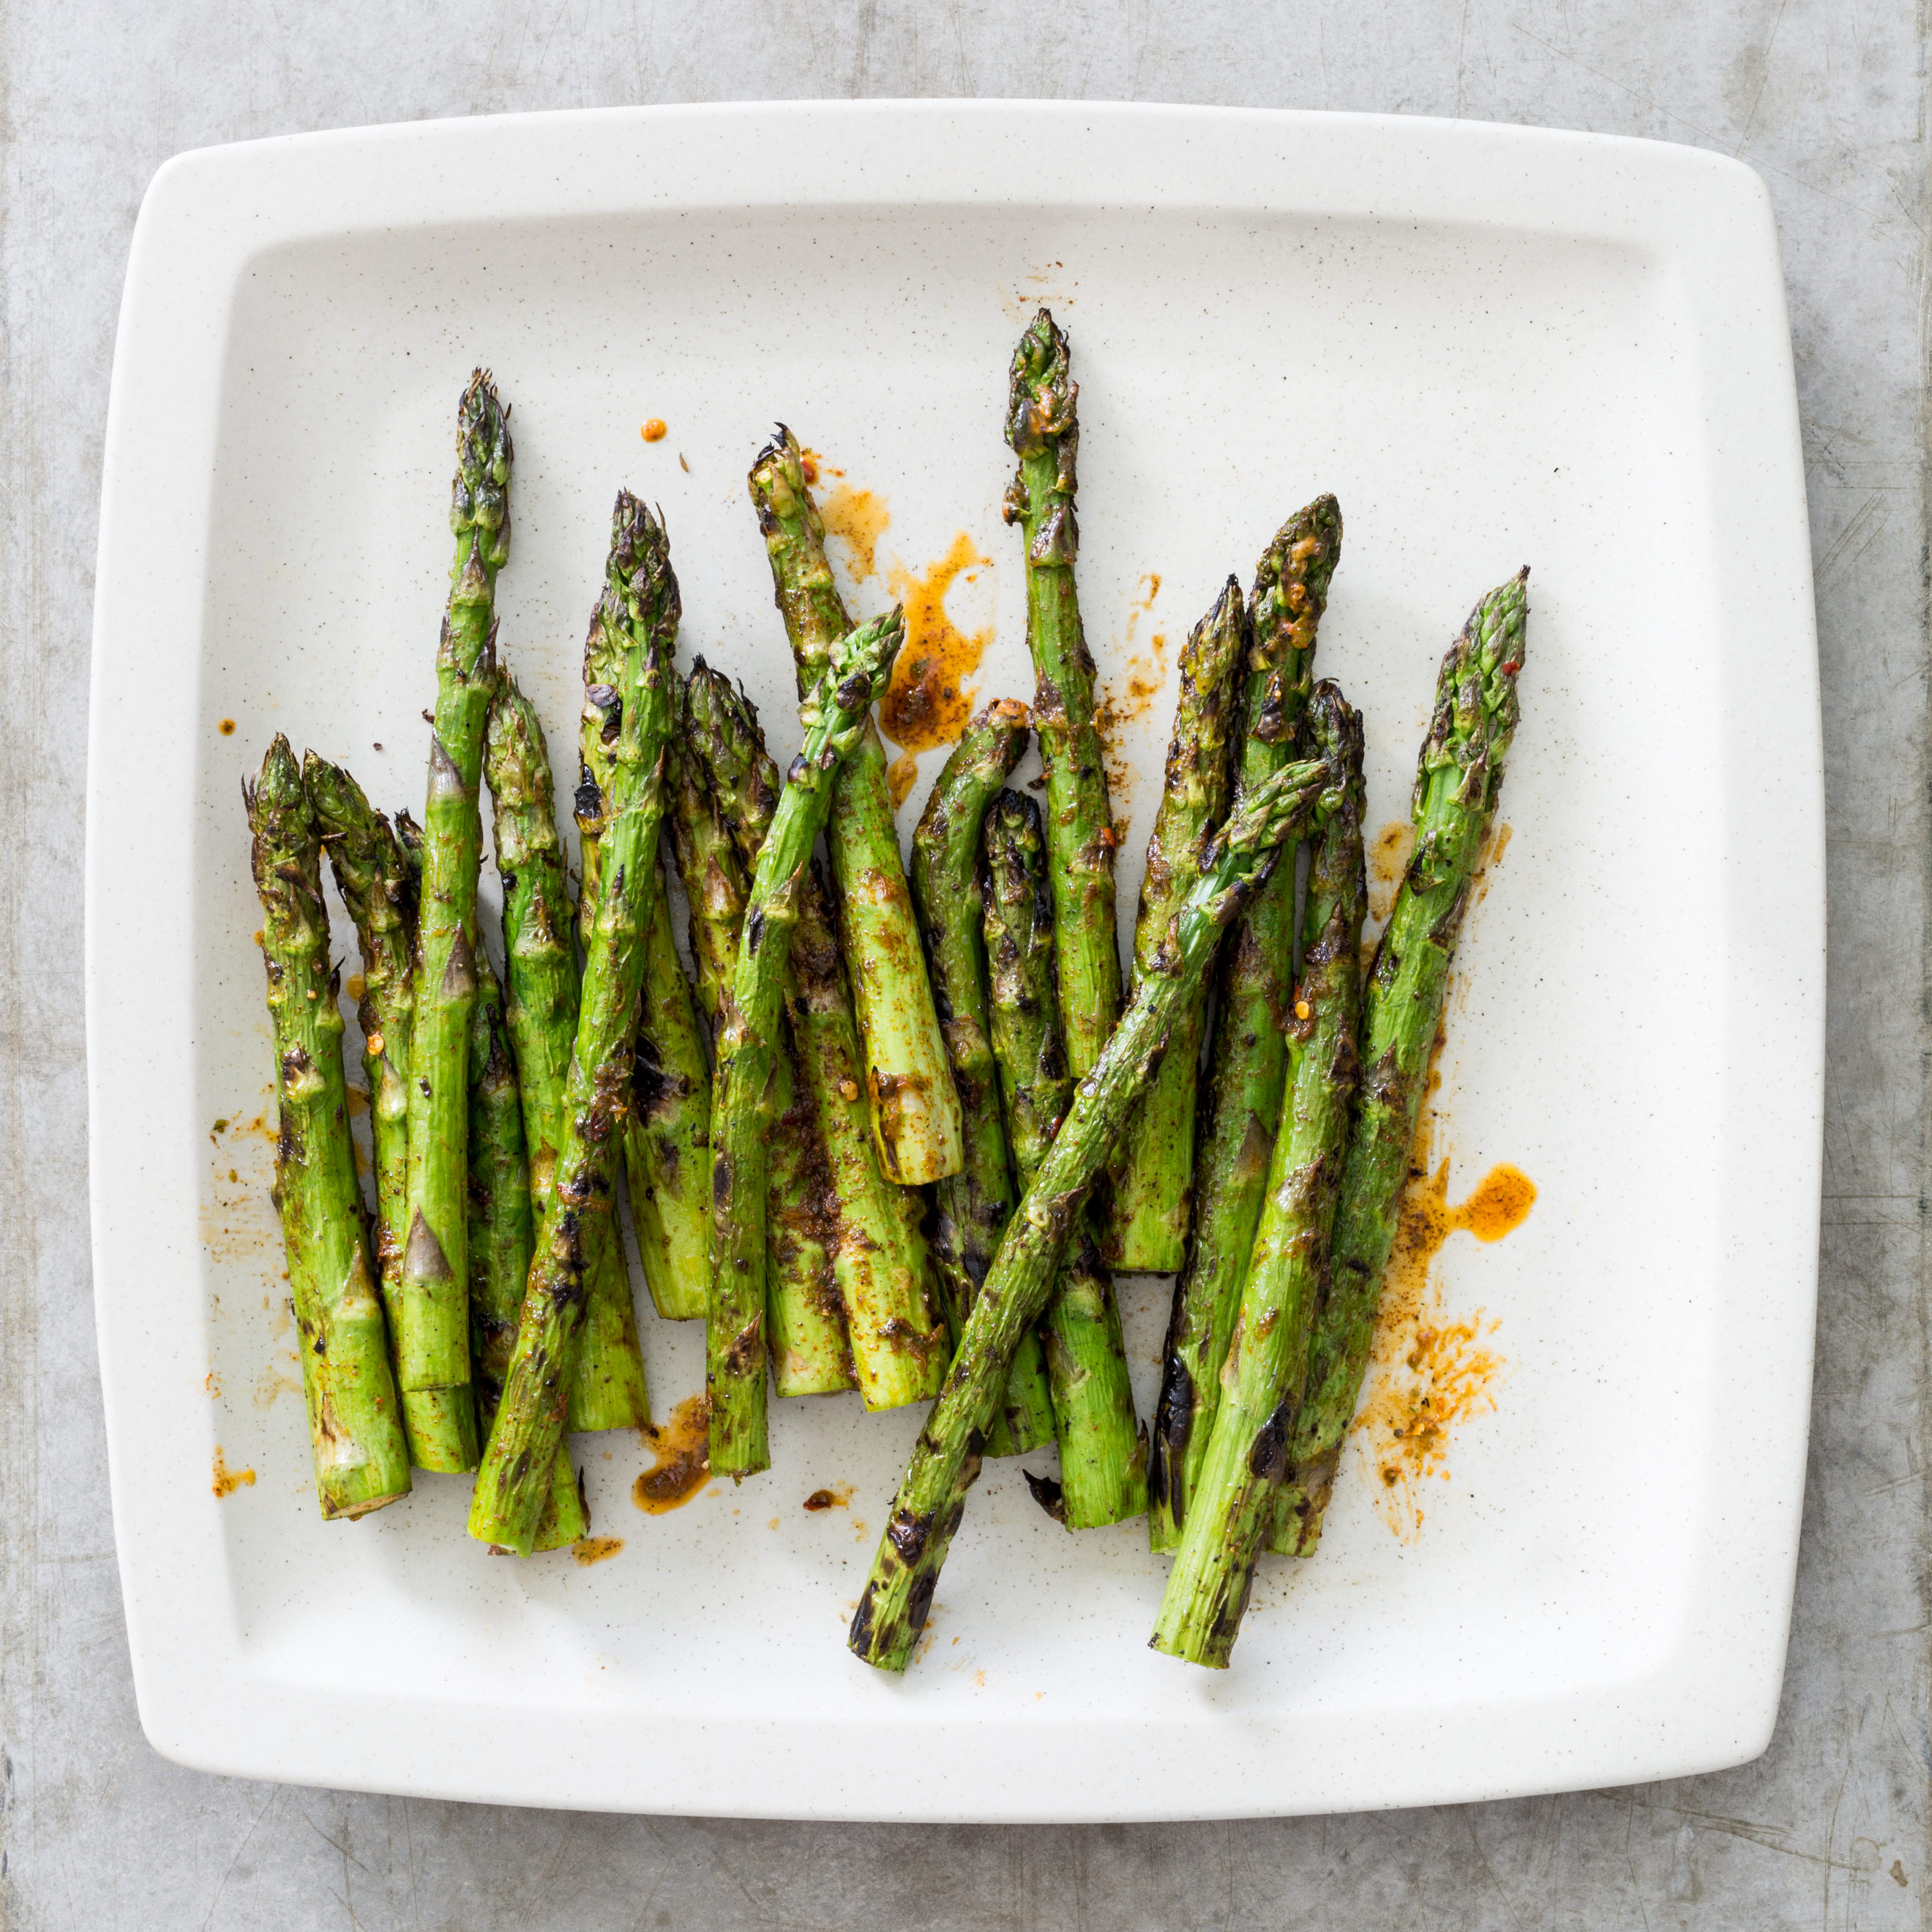 Grilled Asparagus with Chili-Lime Butter